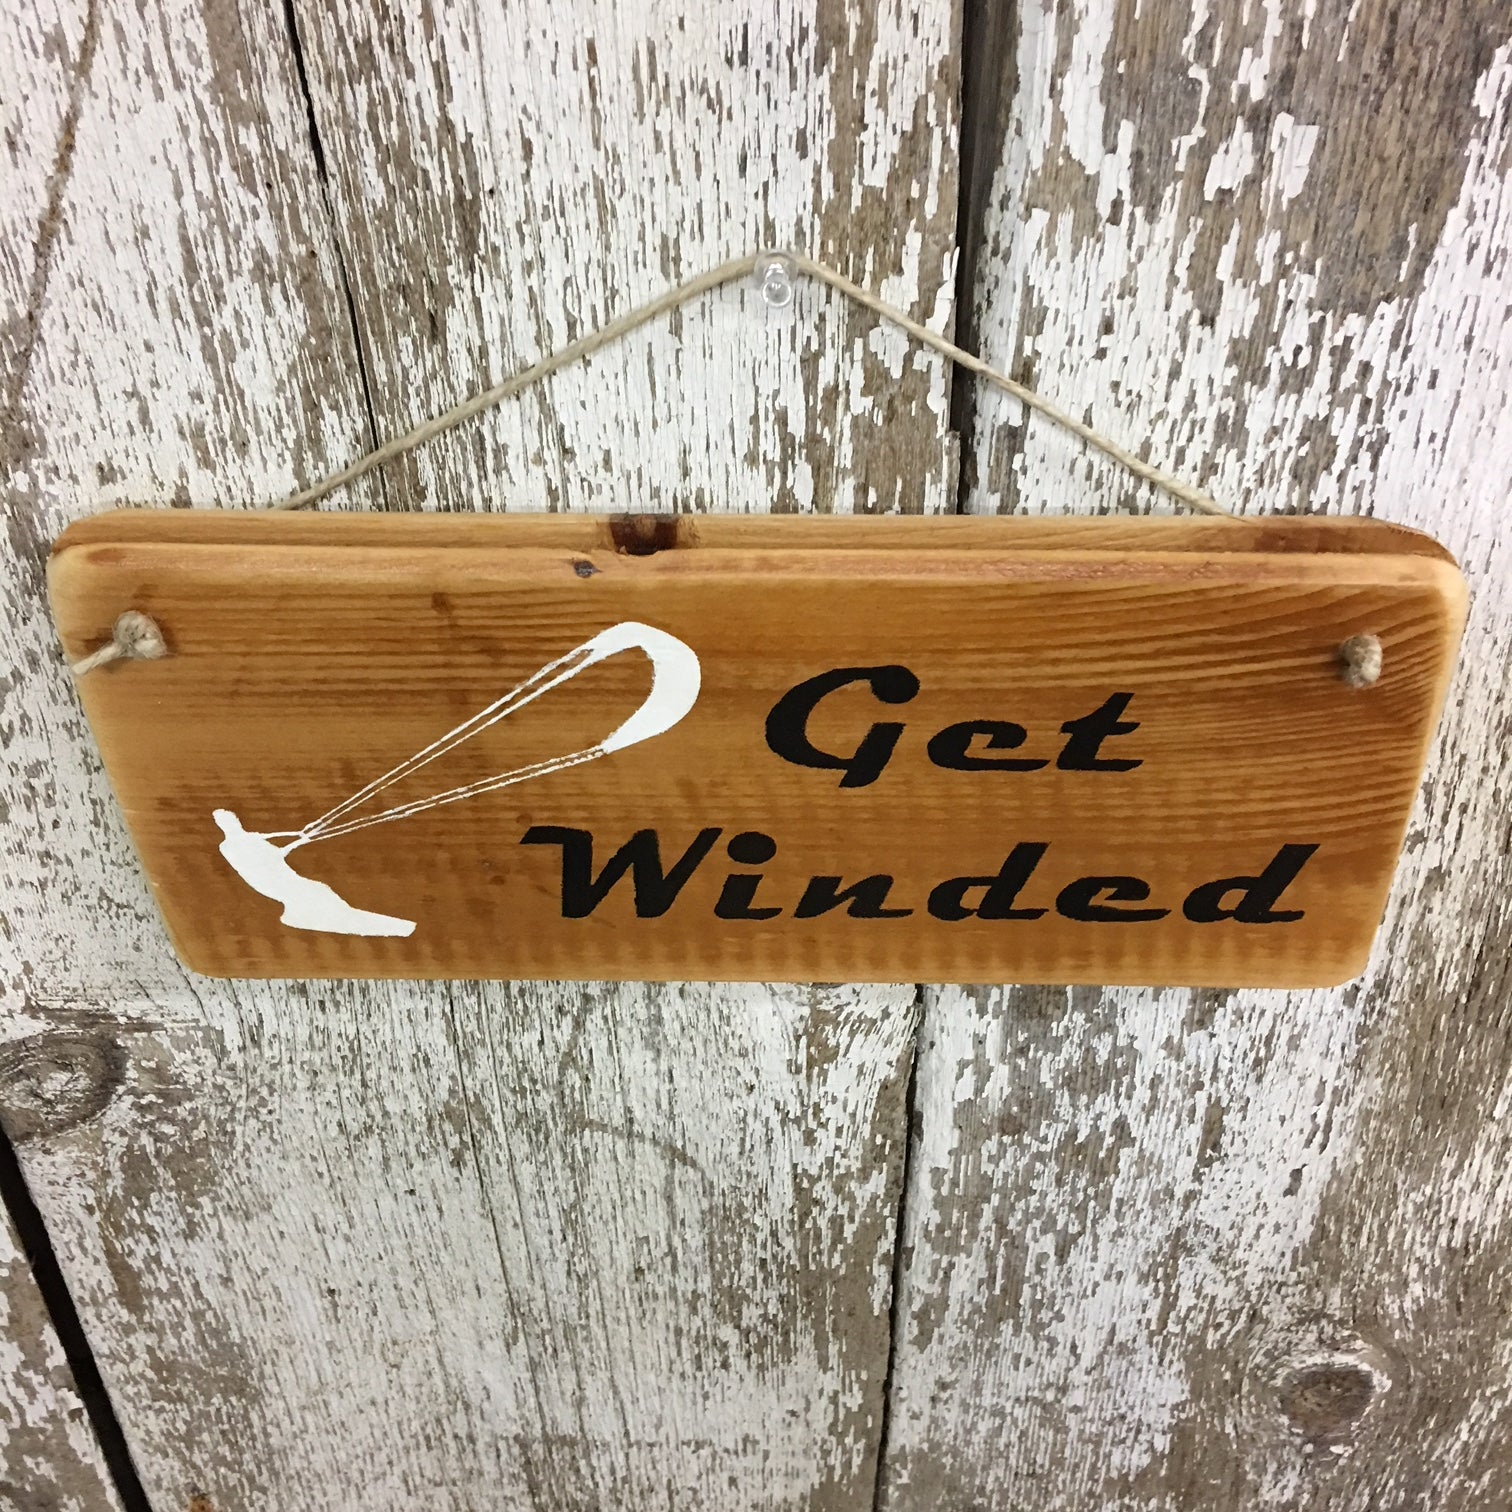 wake skate gift idea cool decor get winded sign wakeboarding